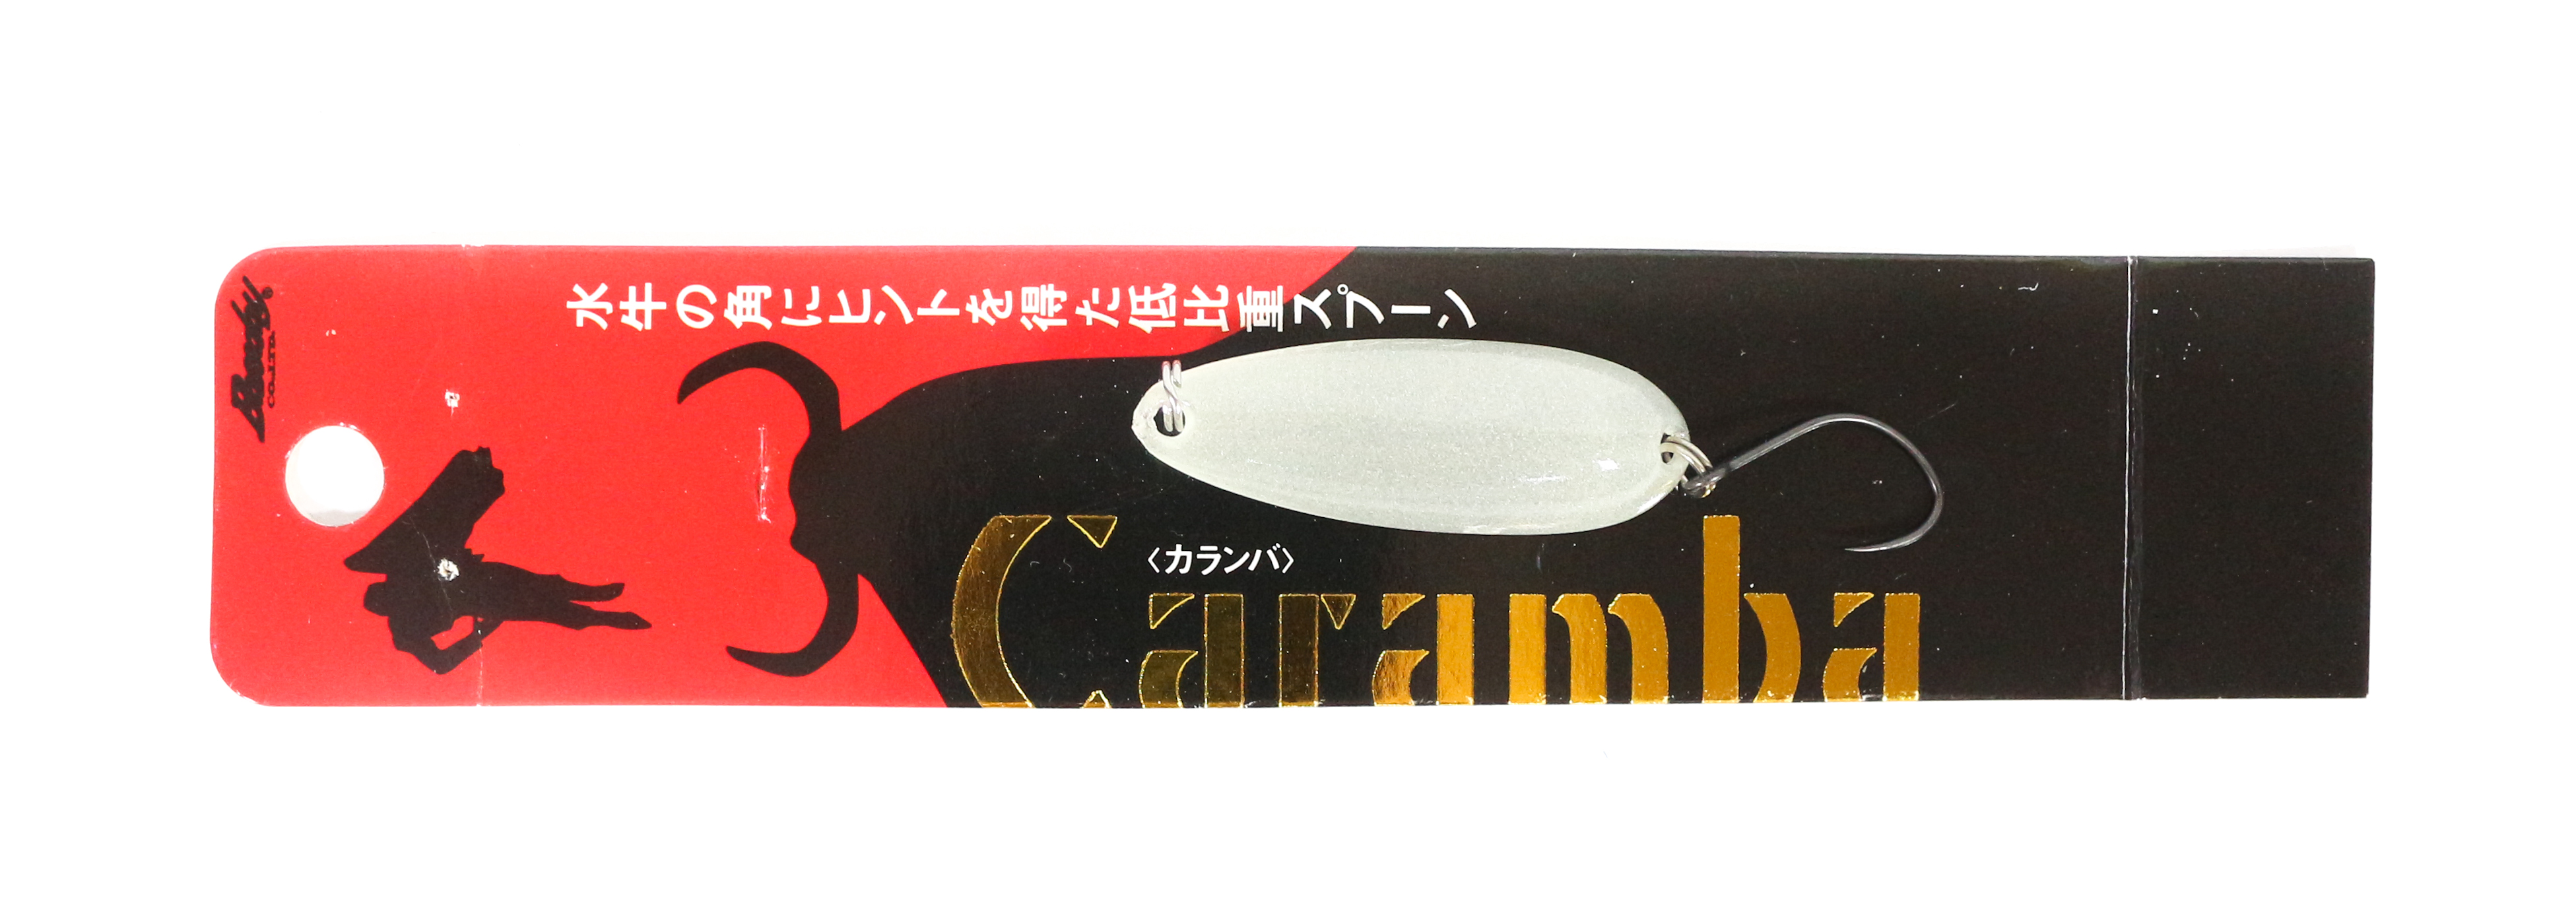 Sale Bassday Caramba 40 Spoon 2.4 grams 109 (5095)